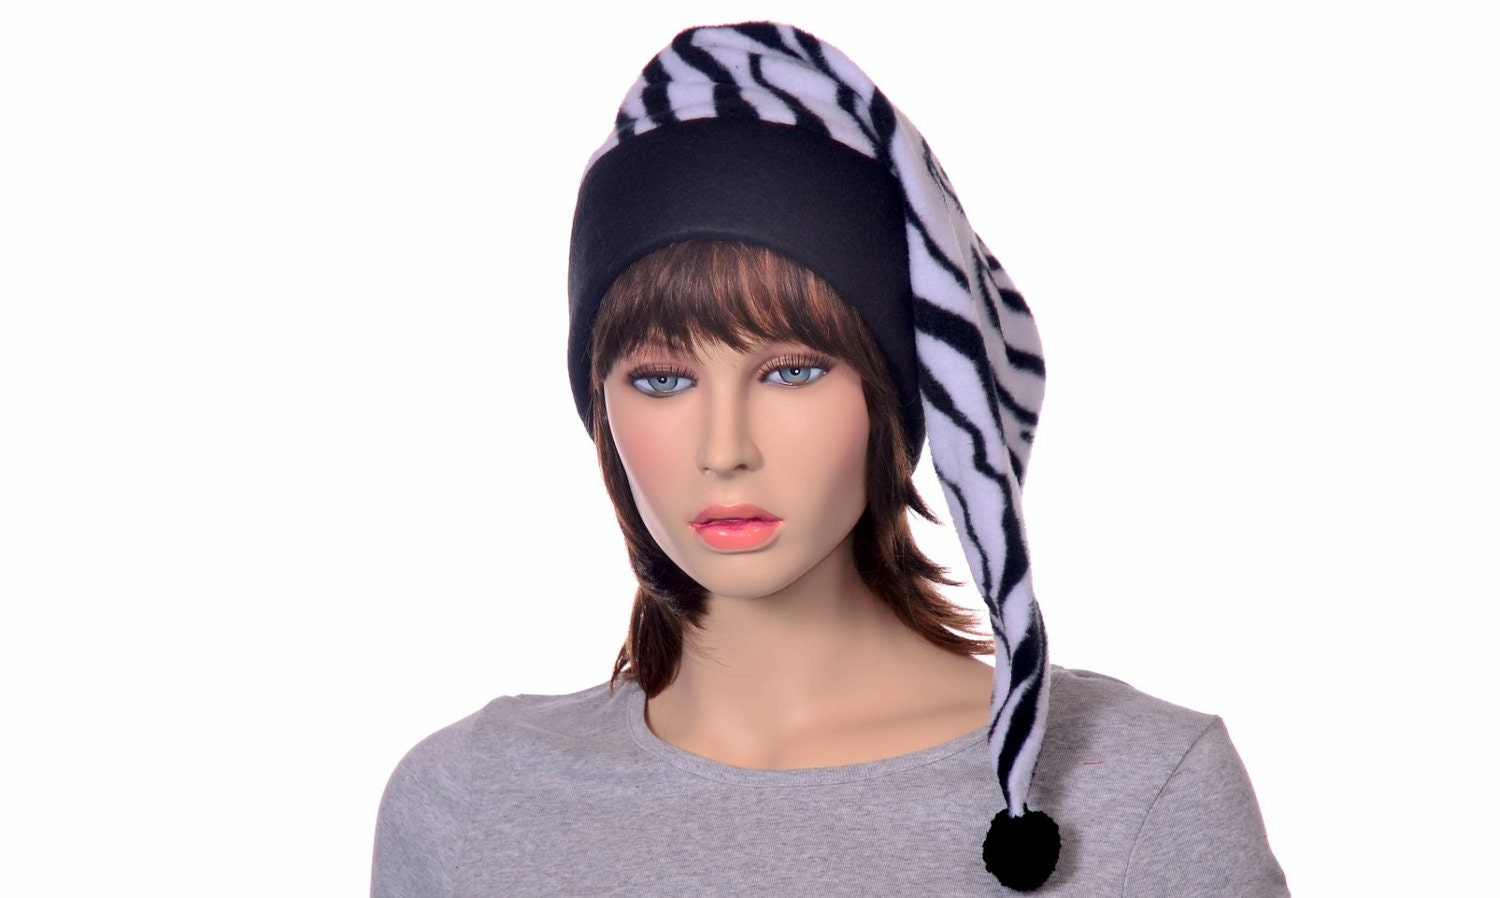 Zebra Stocking Cap Toboggan Long Pointed Hat Fleece Black Brim ... 7c37de08ce0